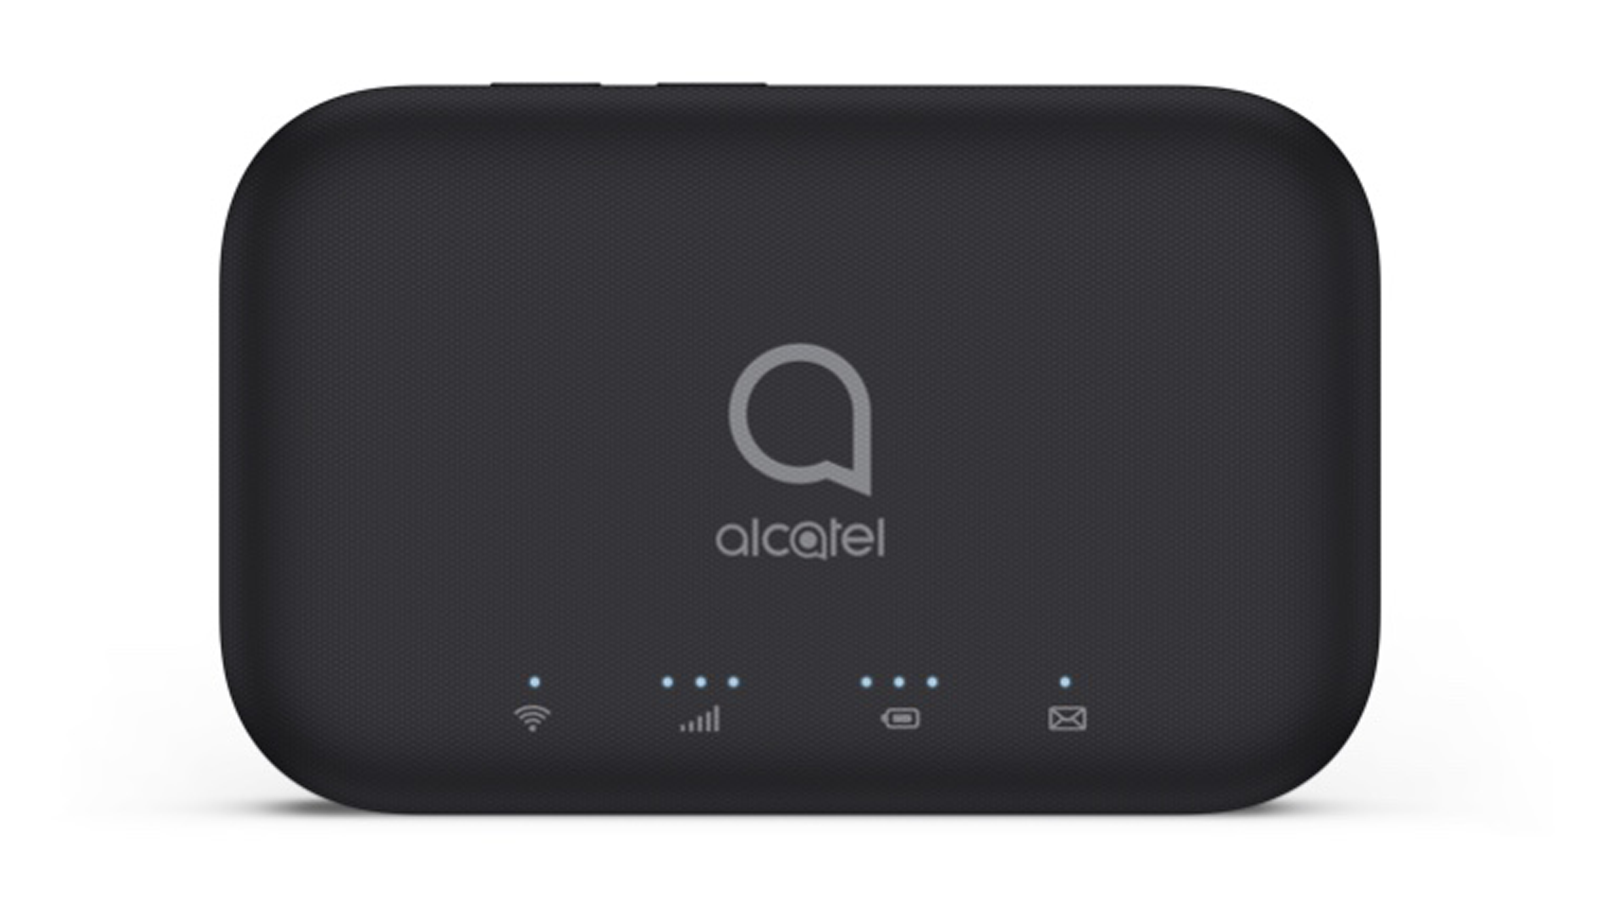 T-Mobile Alcatel LINKZONE 2 device for hotspot with ports and lights